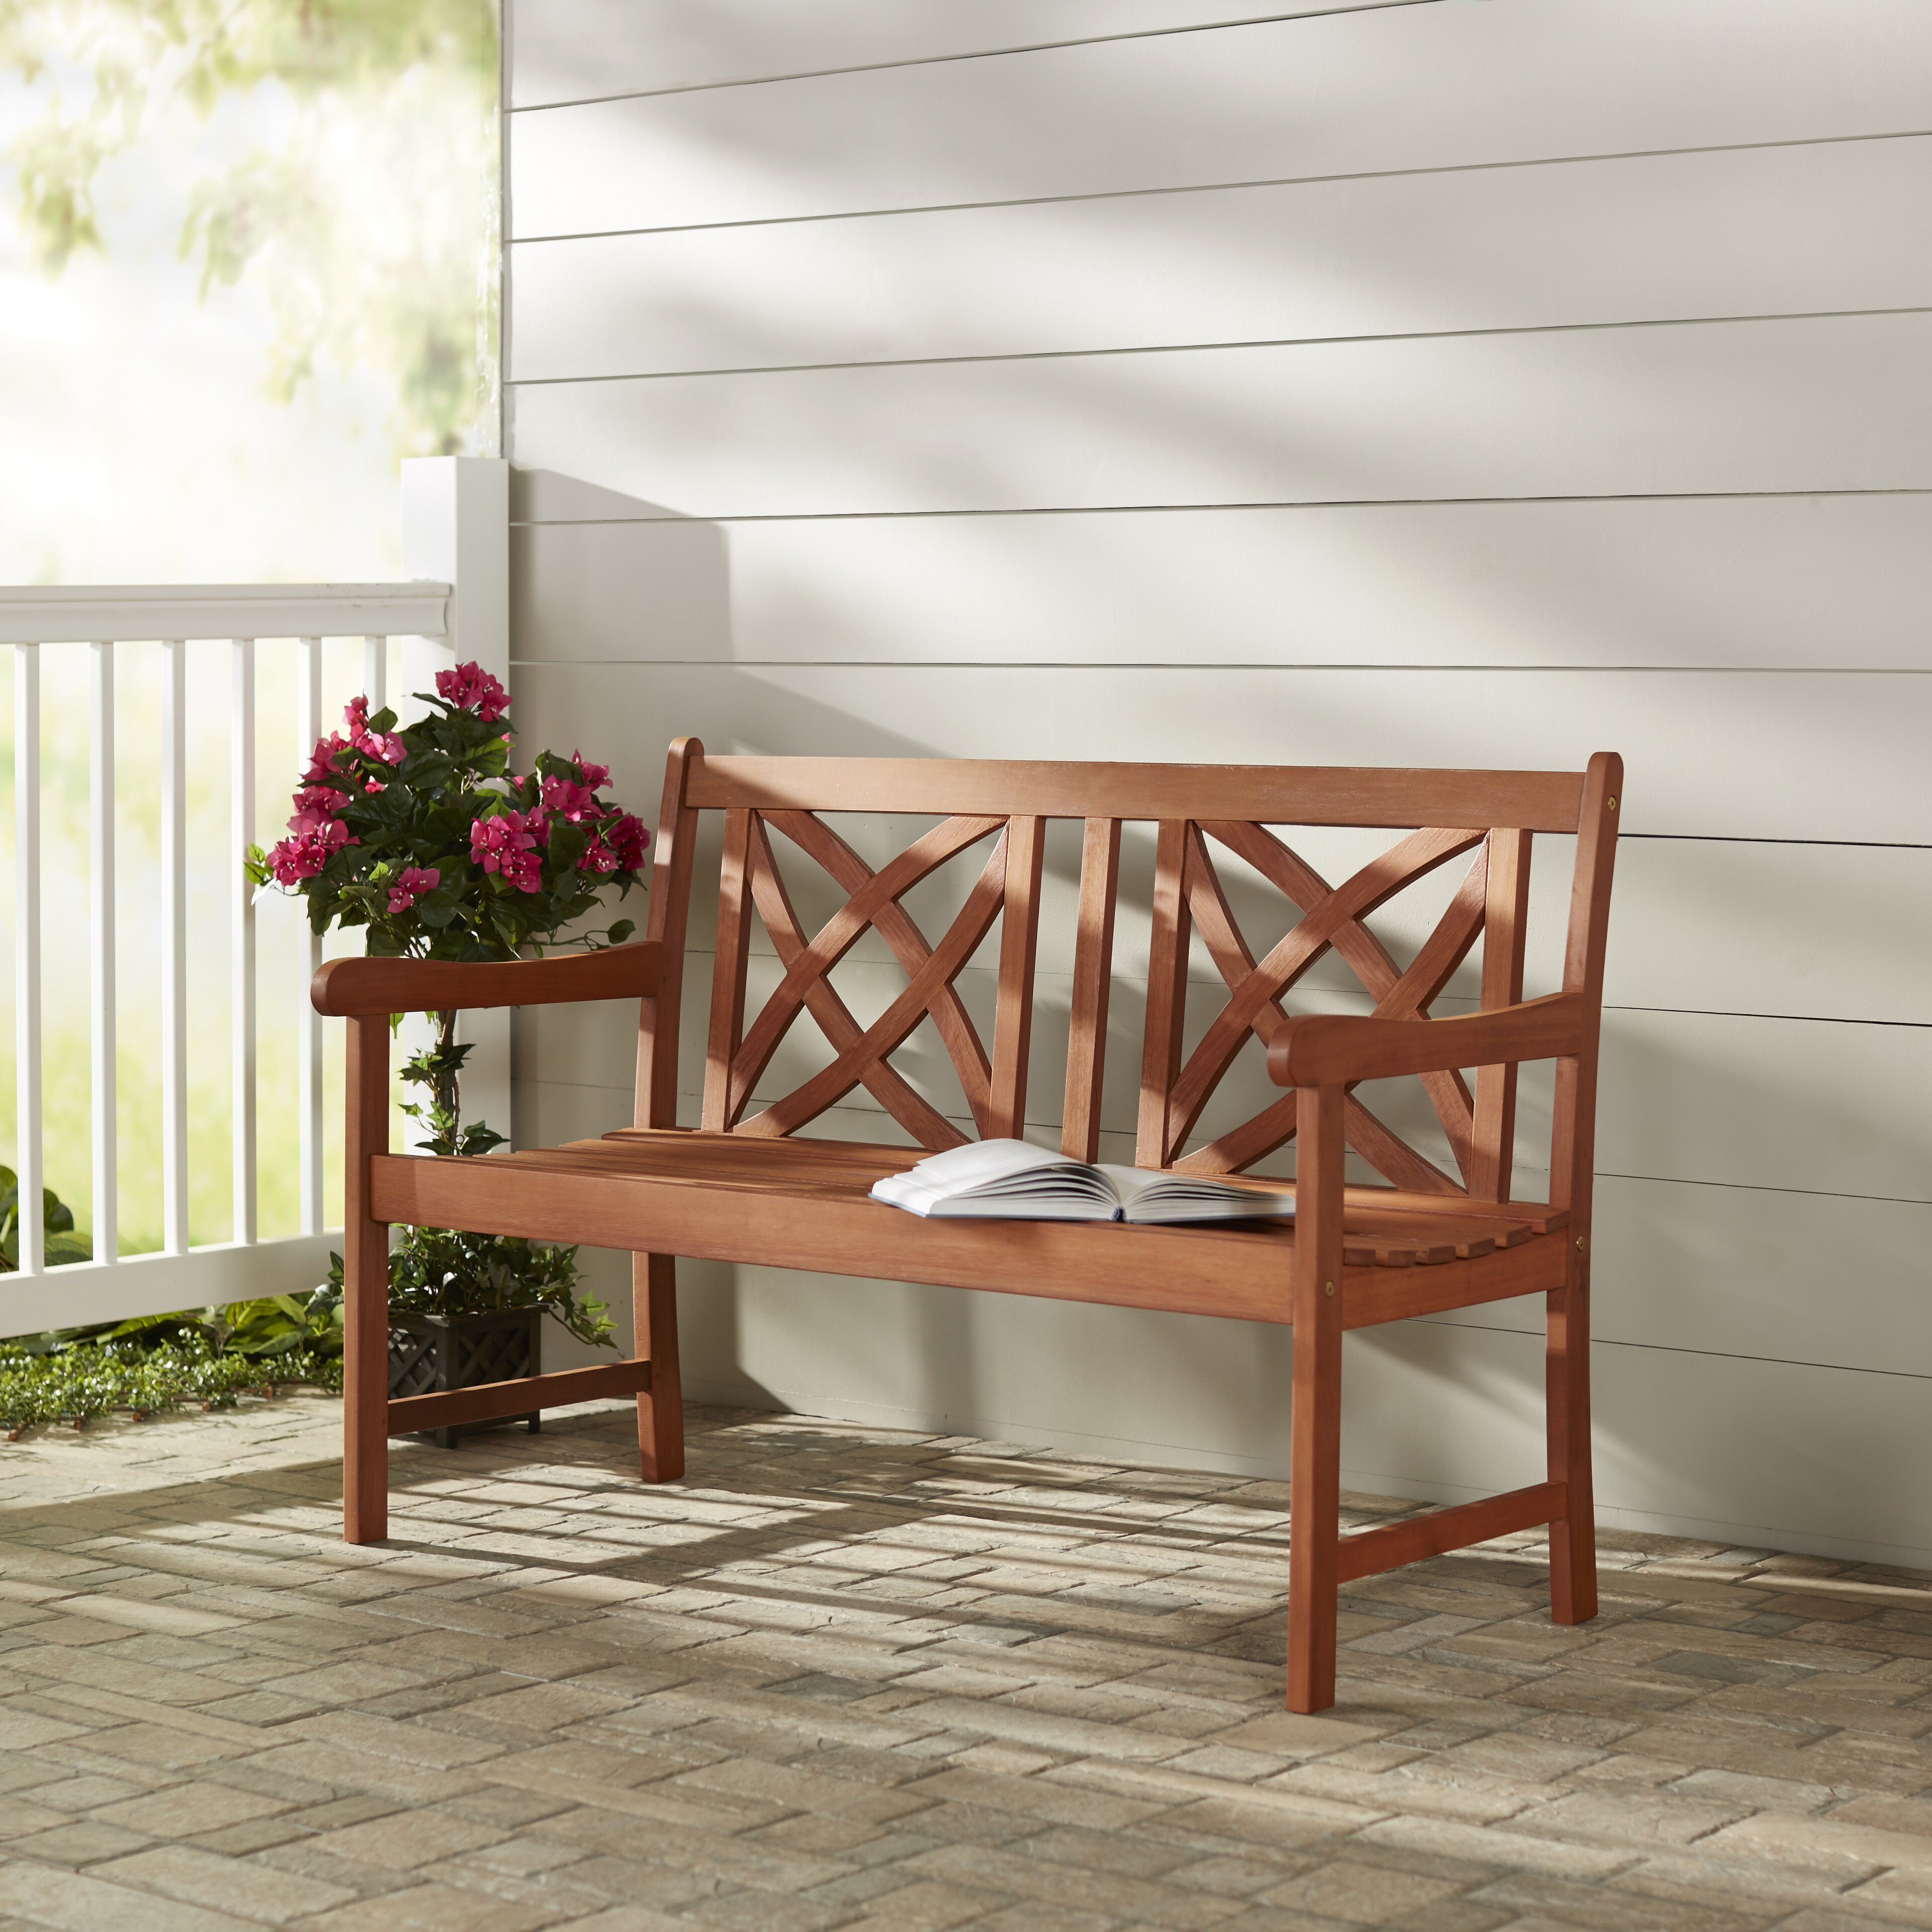 Wooden Benches Outdoor: Charlton Home Wood Garden Bench & Reviews